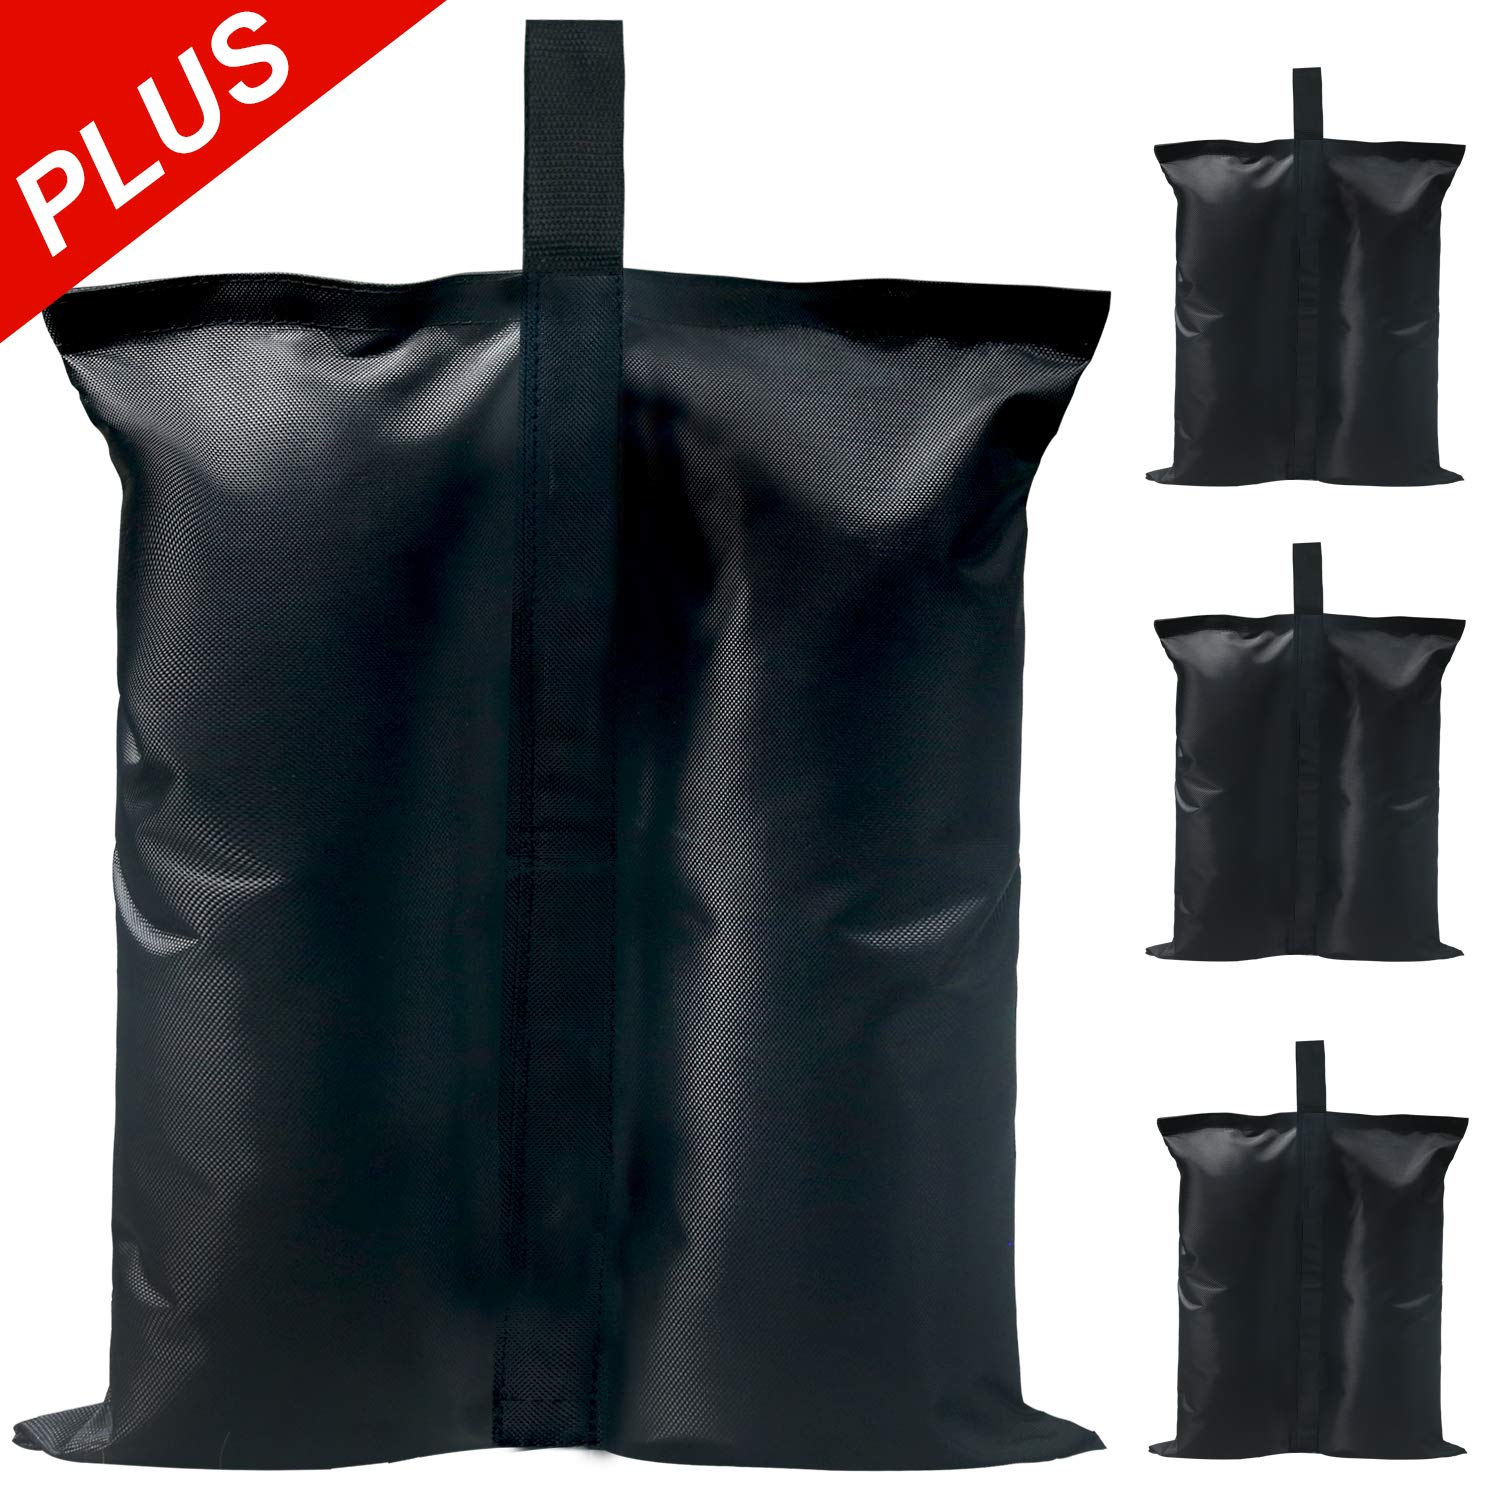 ABCCANOPY Industrial Grade Canopy Weights Bag Leg Weights for Pop up Canopy, Instant Outdoor Shelter (Black-Plus)